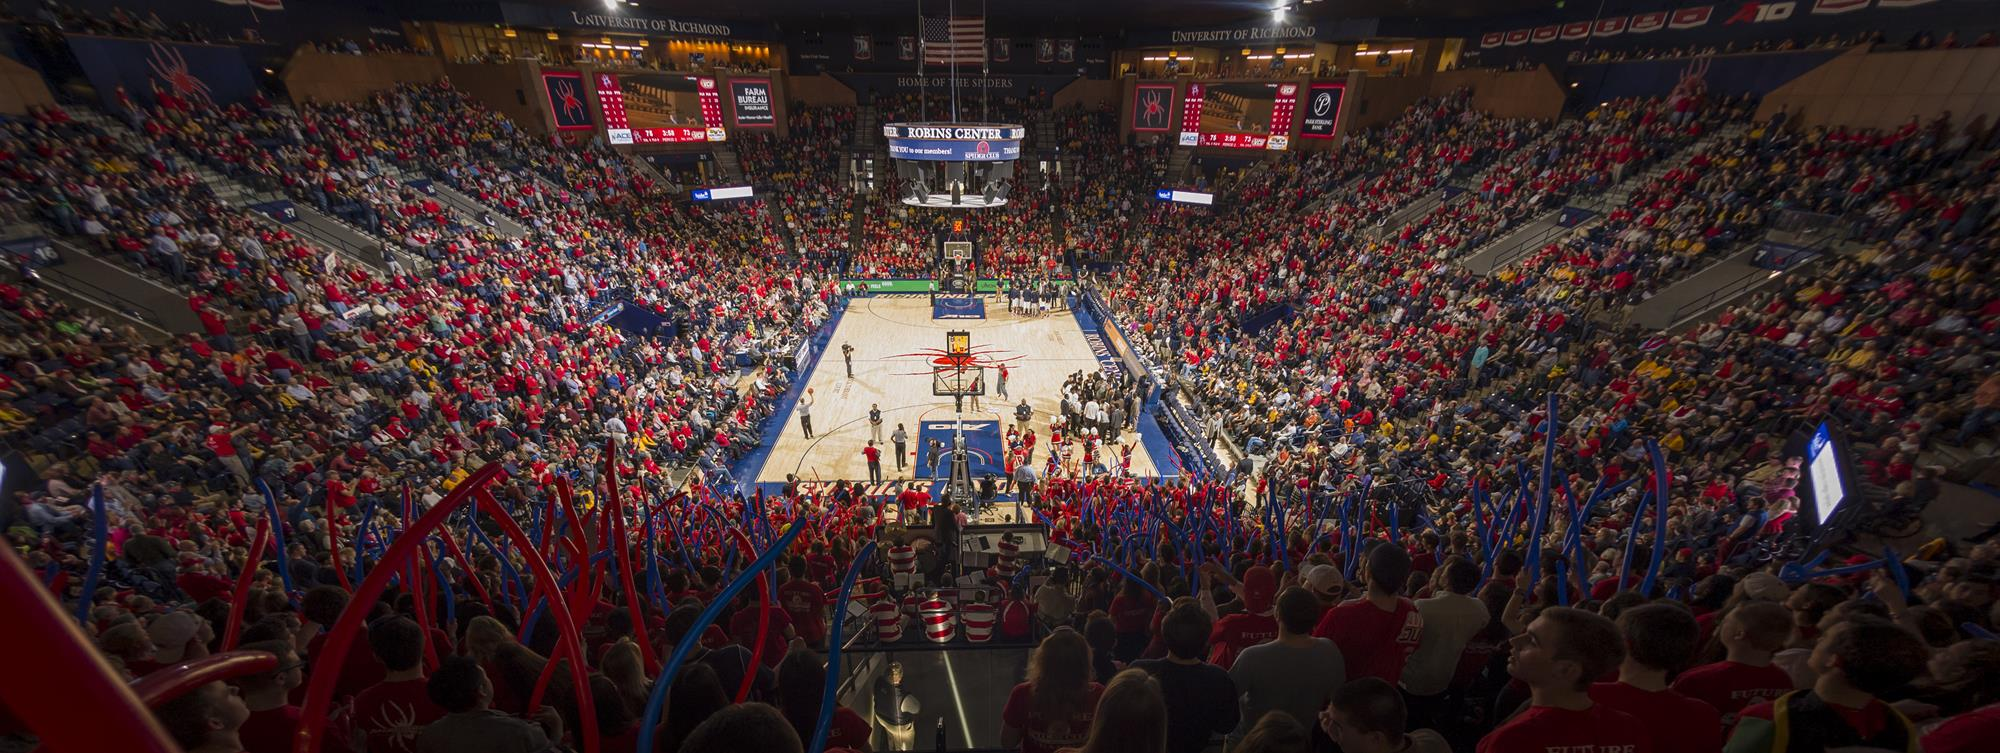 What S New At The Robins Center For 2017 18 University Of Richmond Athletics